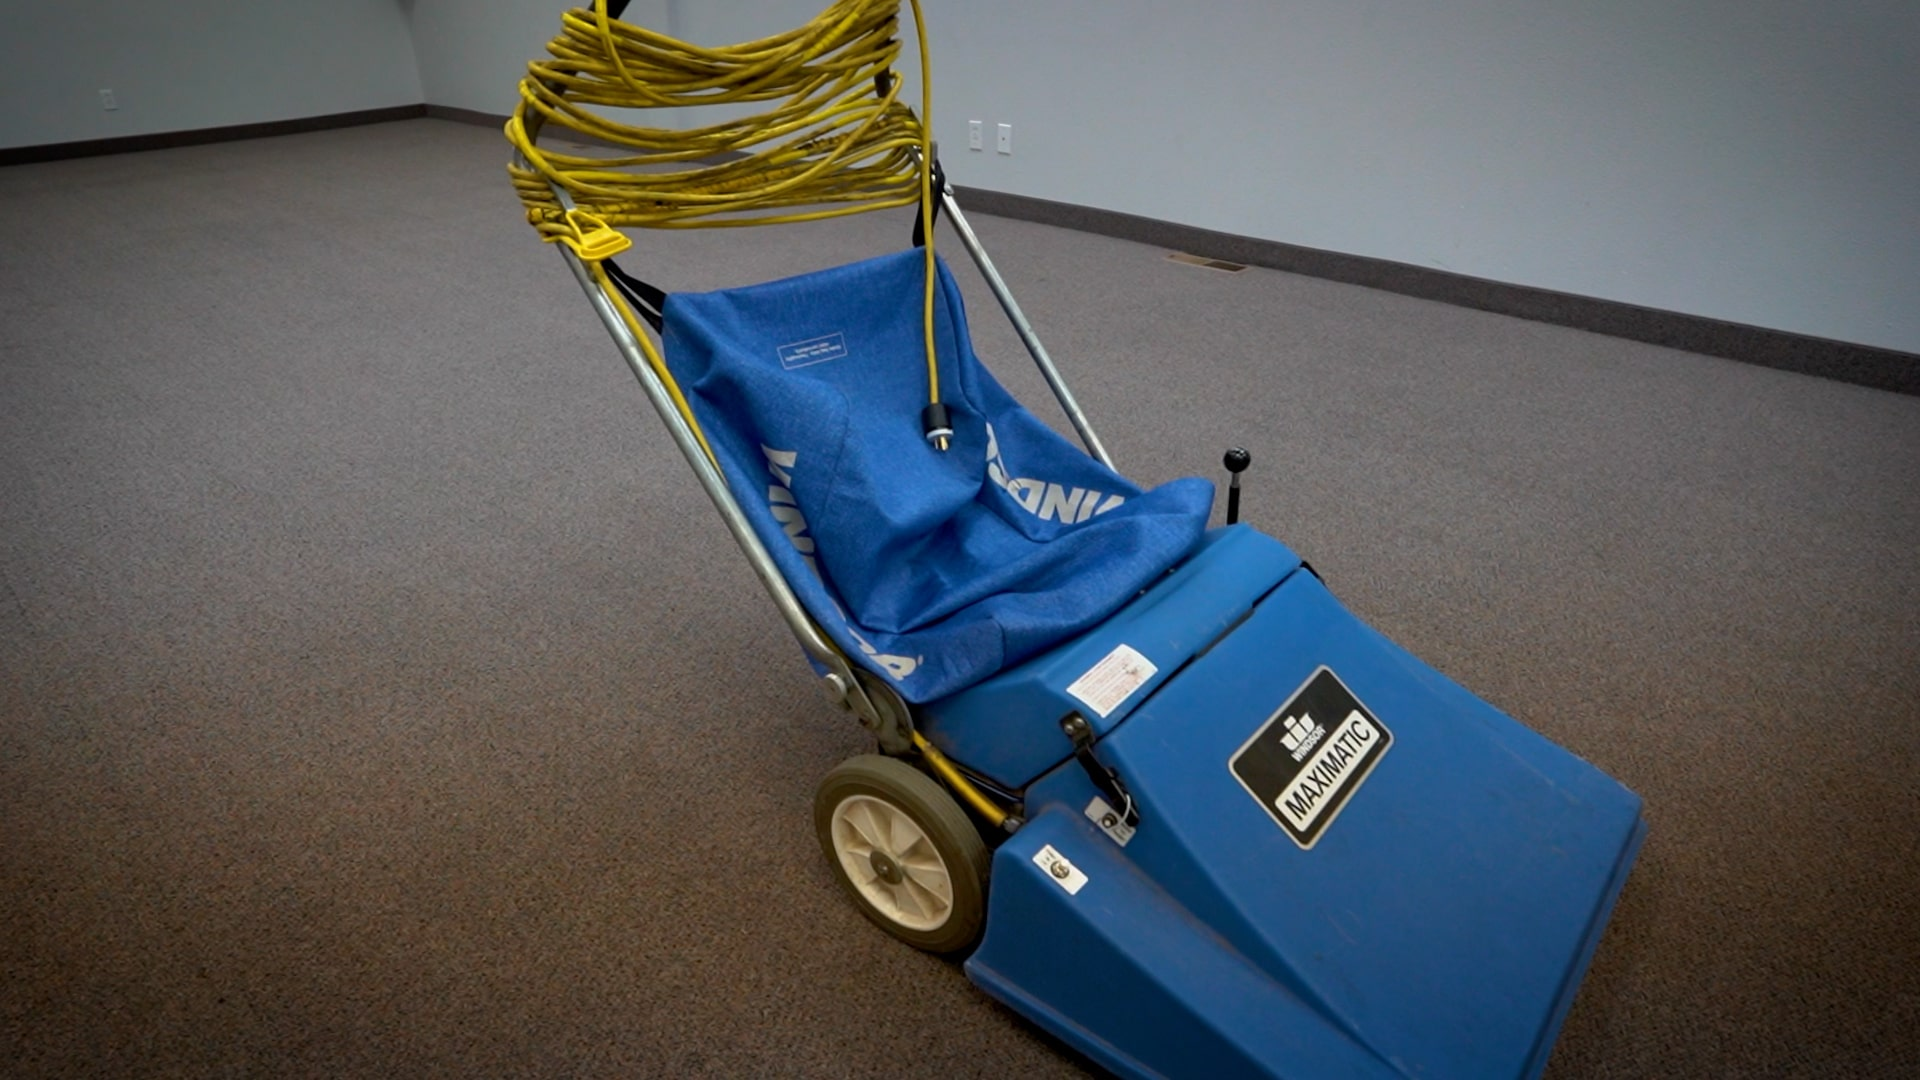 Promote Cleanliness in the Event Center Through Using Our Own Vacuum Cleaner